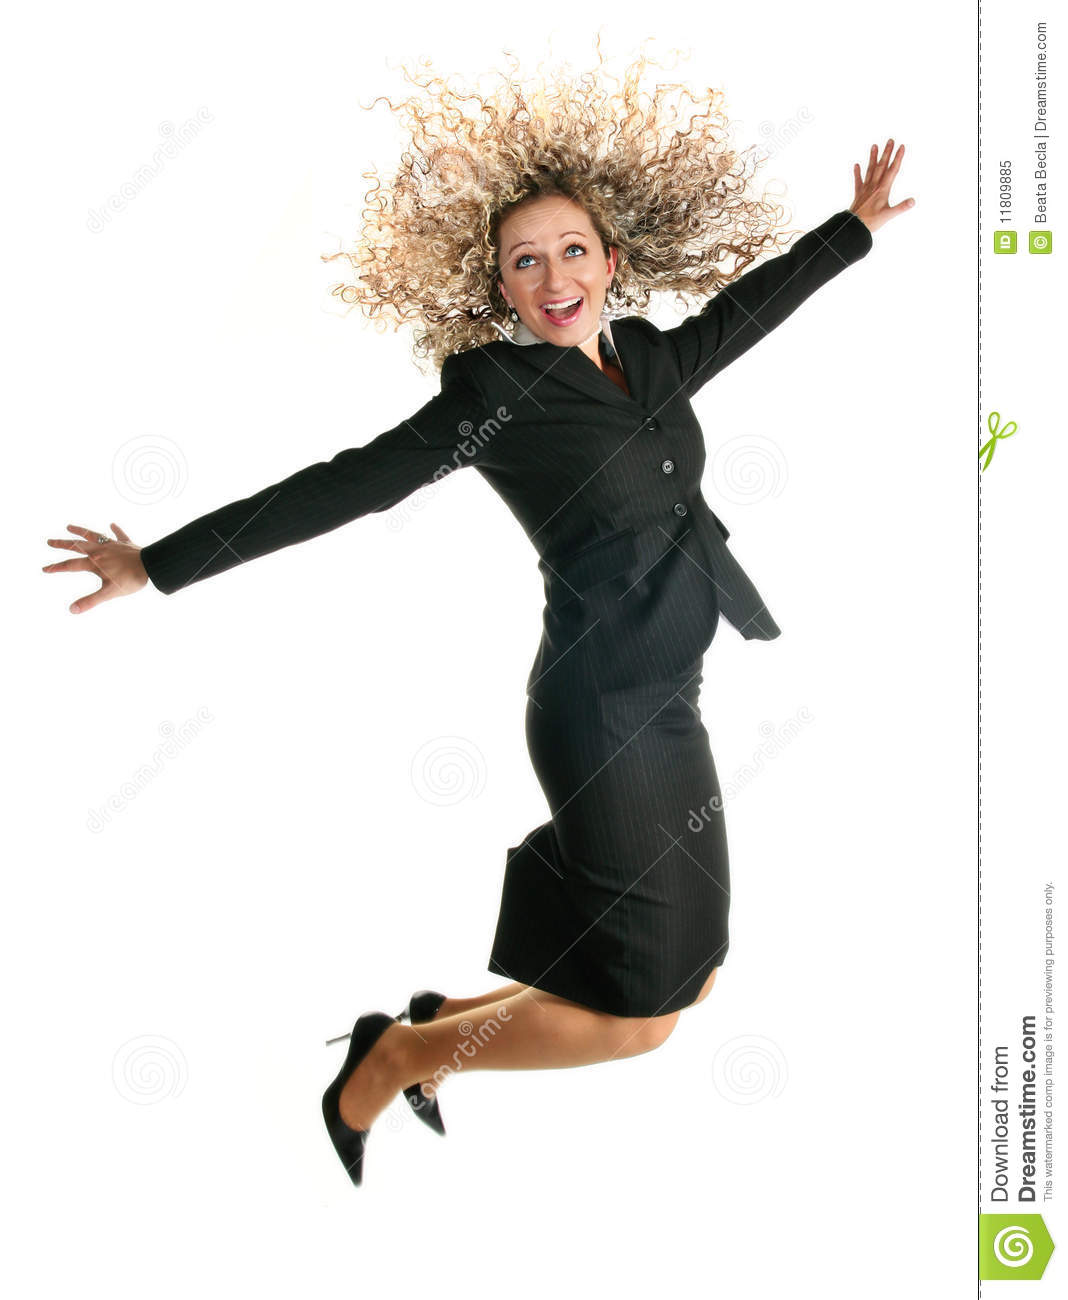 excited-jumping-business-woman-11809885.jpg